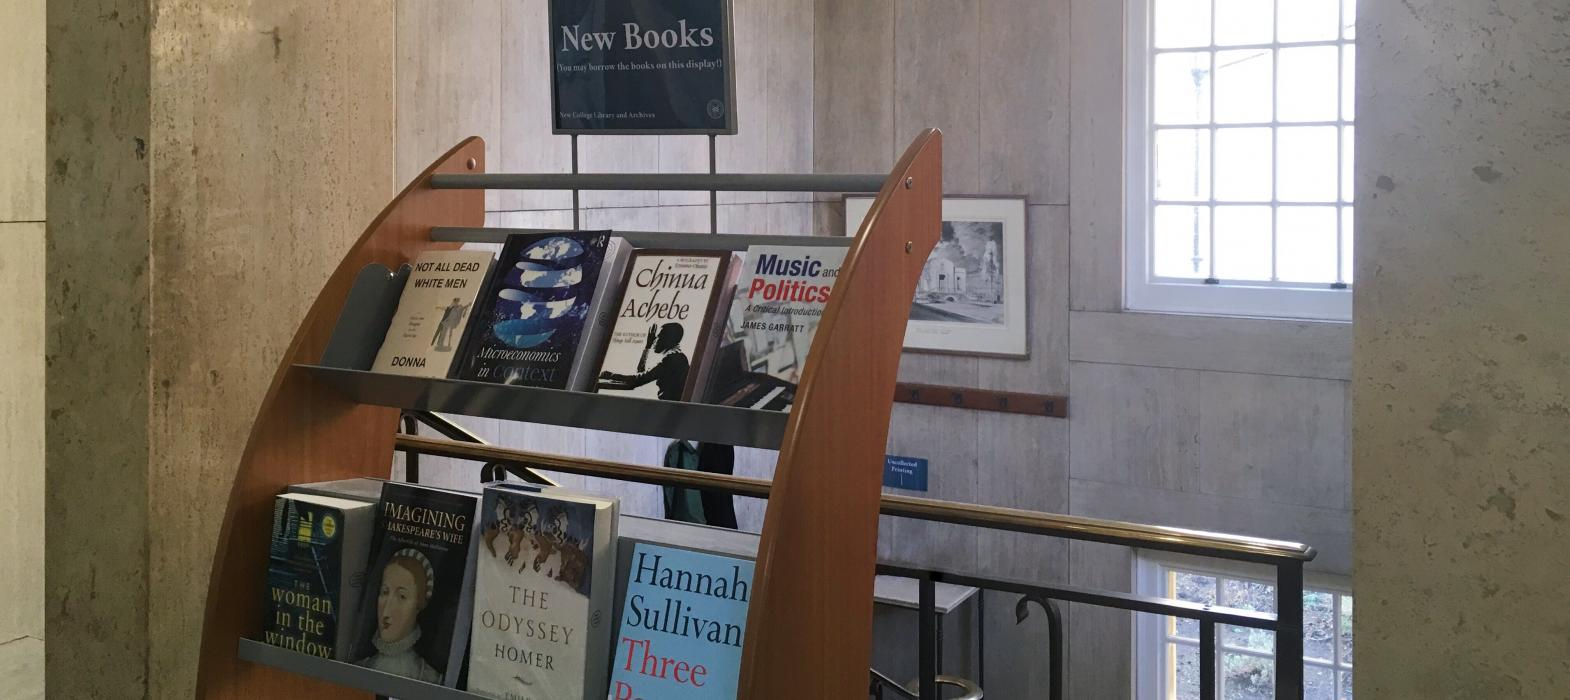 New Books Display, Entrance Hall, New College Library, Oxford